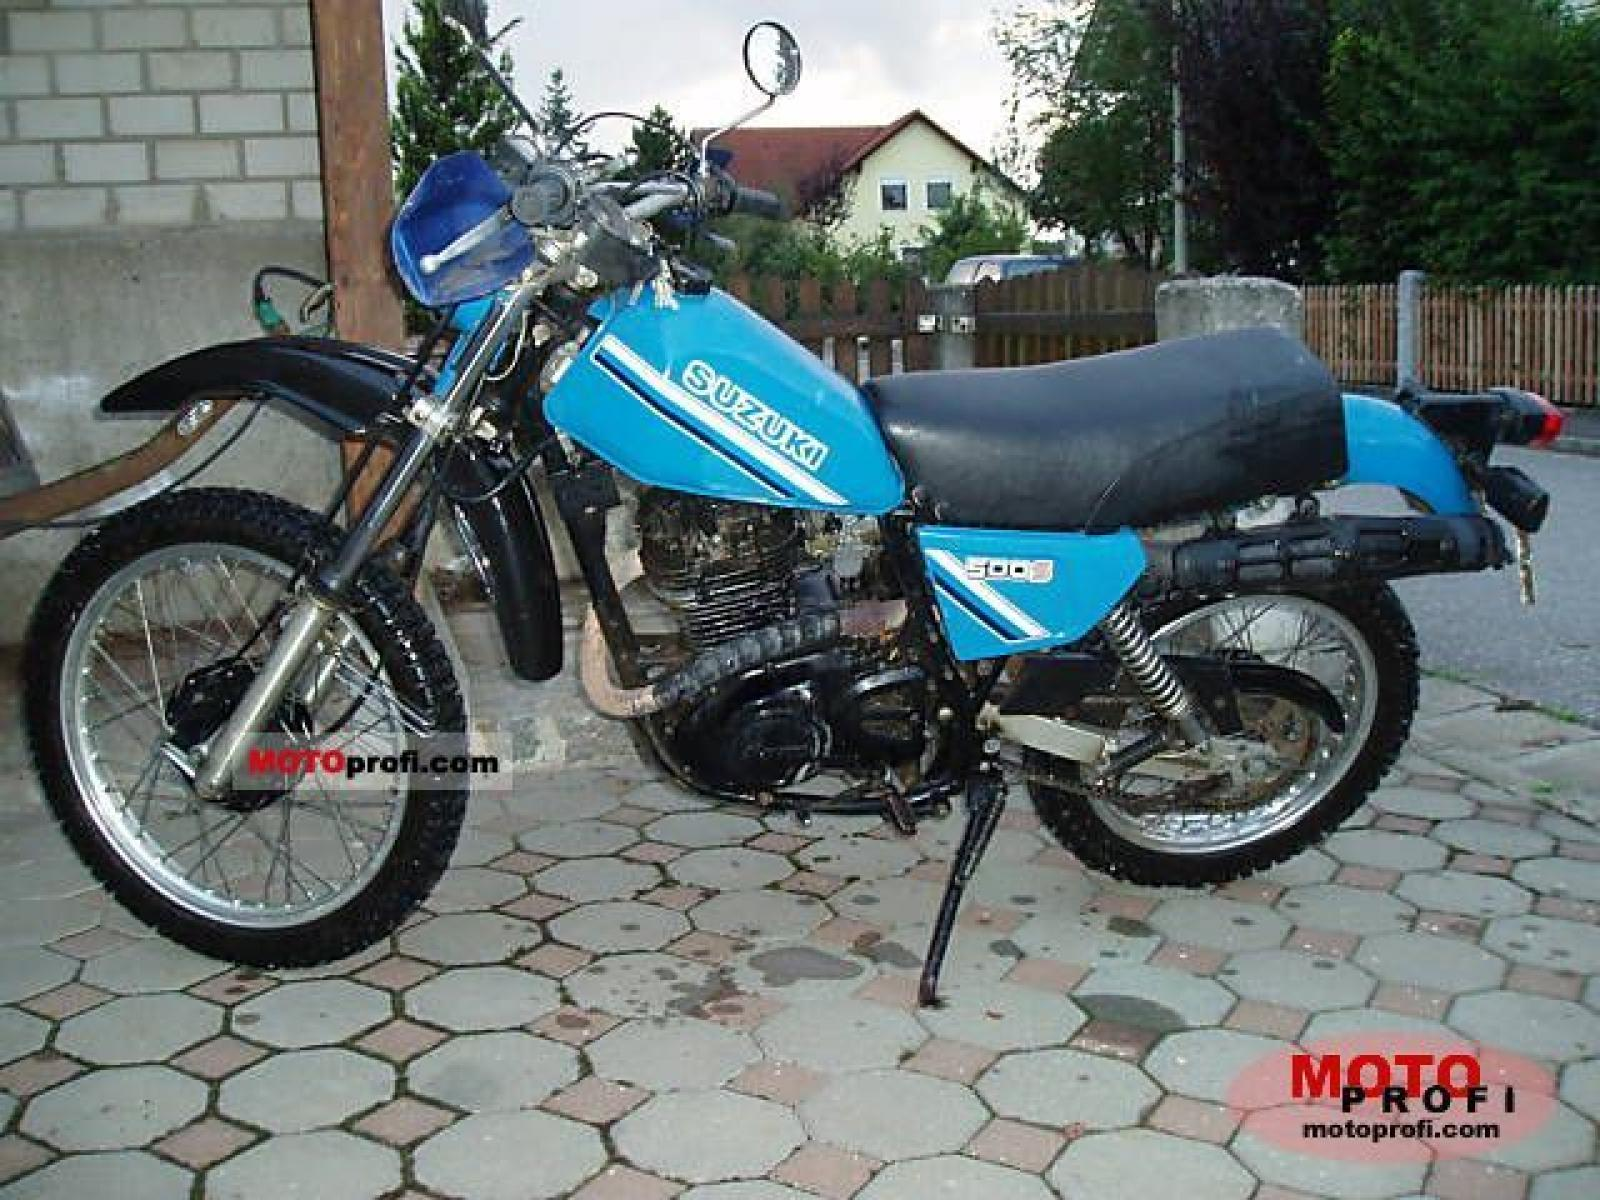 1982 Suzuki Dr 125 S Moped Scooter 800 1024 1280 1600 Origin